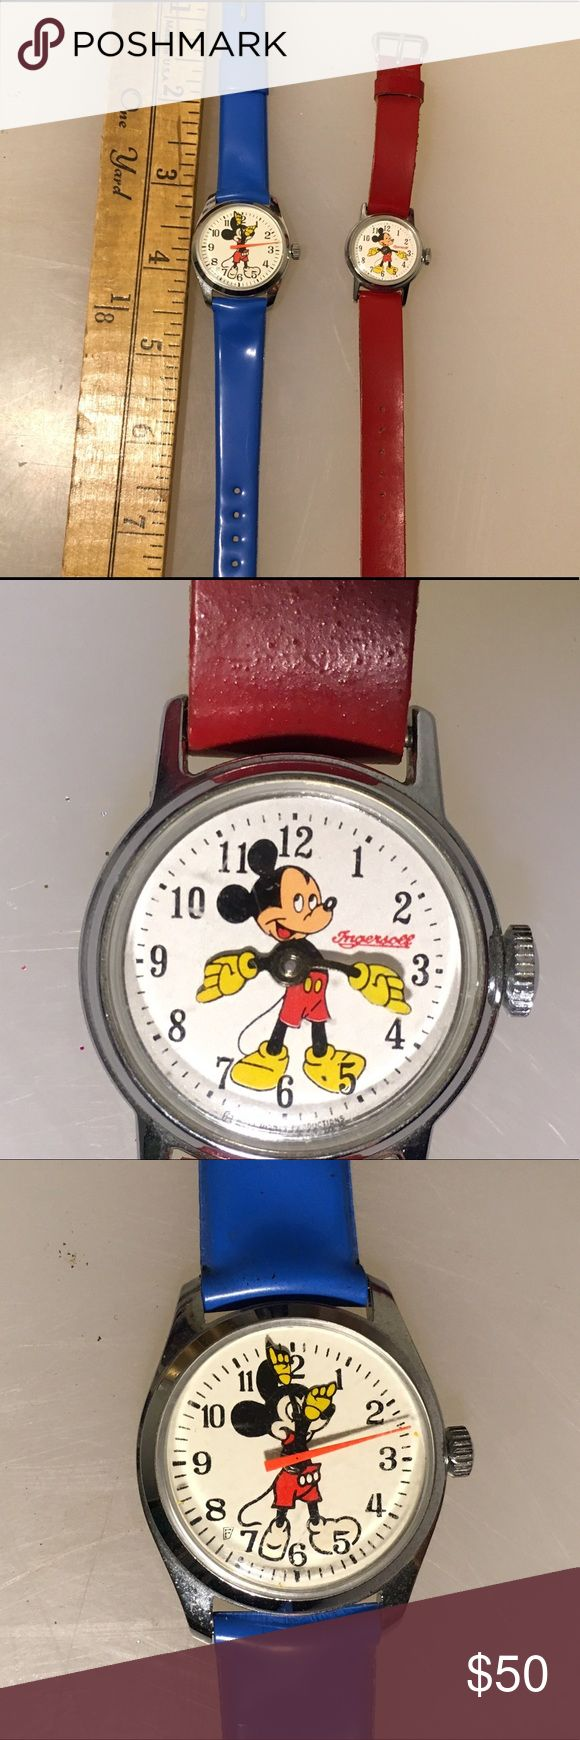 Vintage Mickey Mouse Watches One red banded Ingersoll and on blue vinyl banded Mickey watches. Neither working and may just need battery. Vintage Accessories Watches